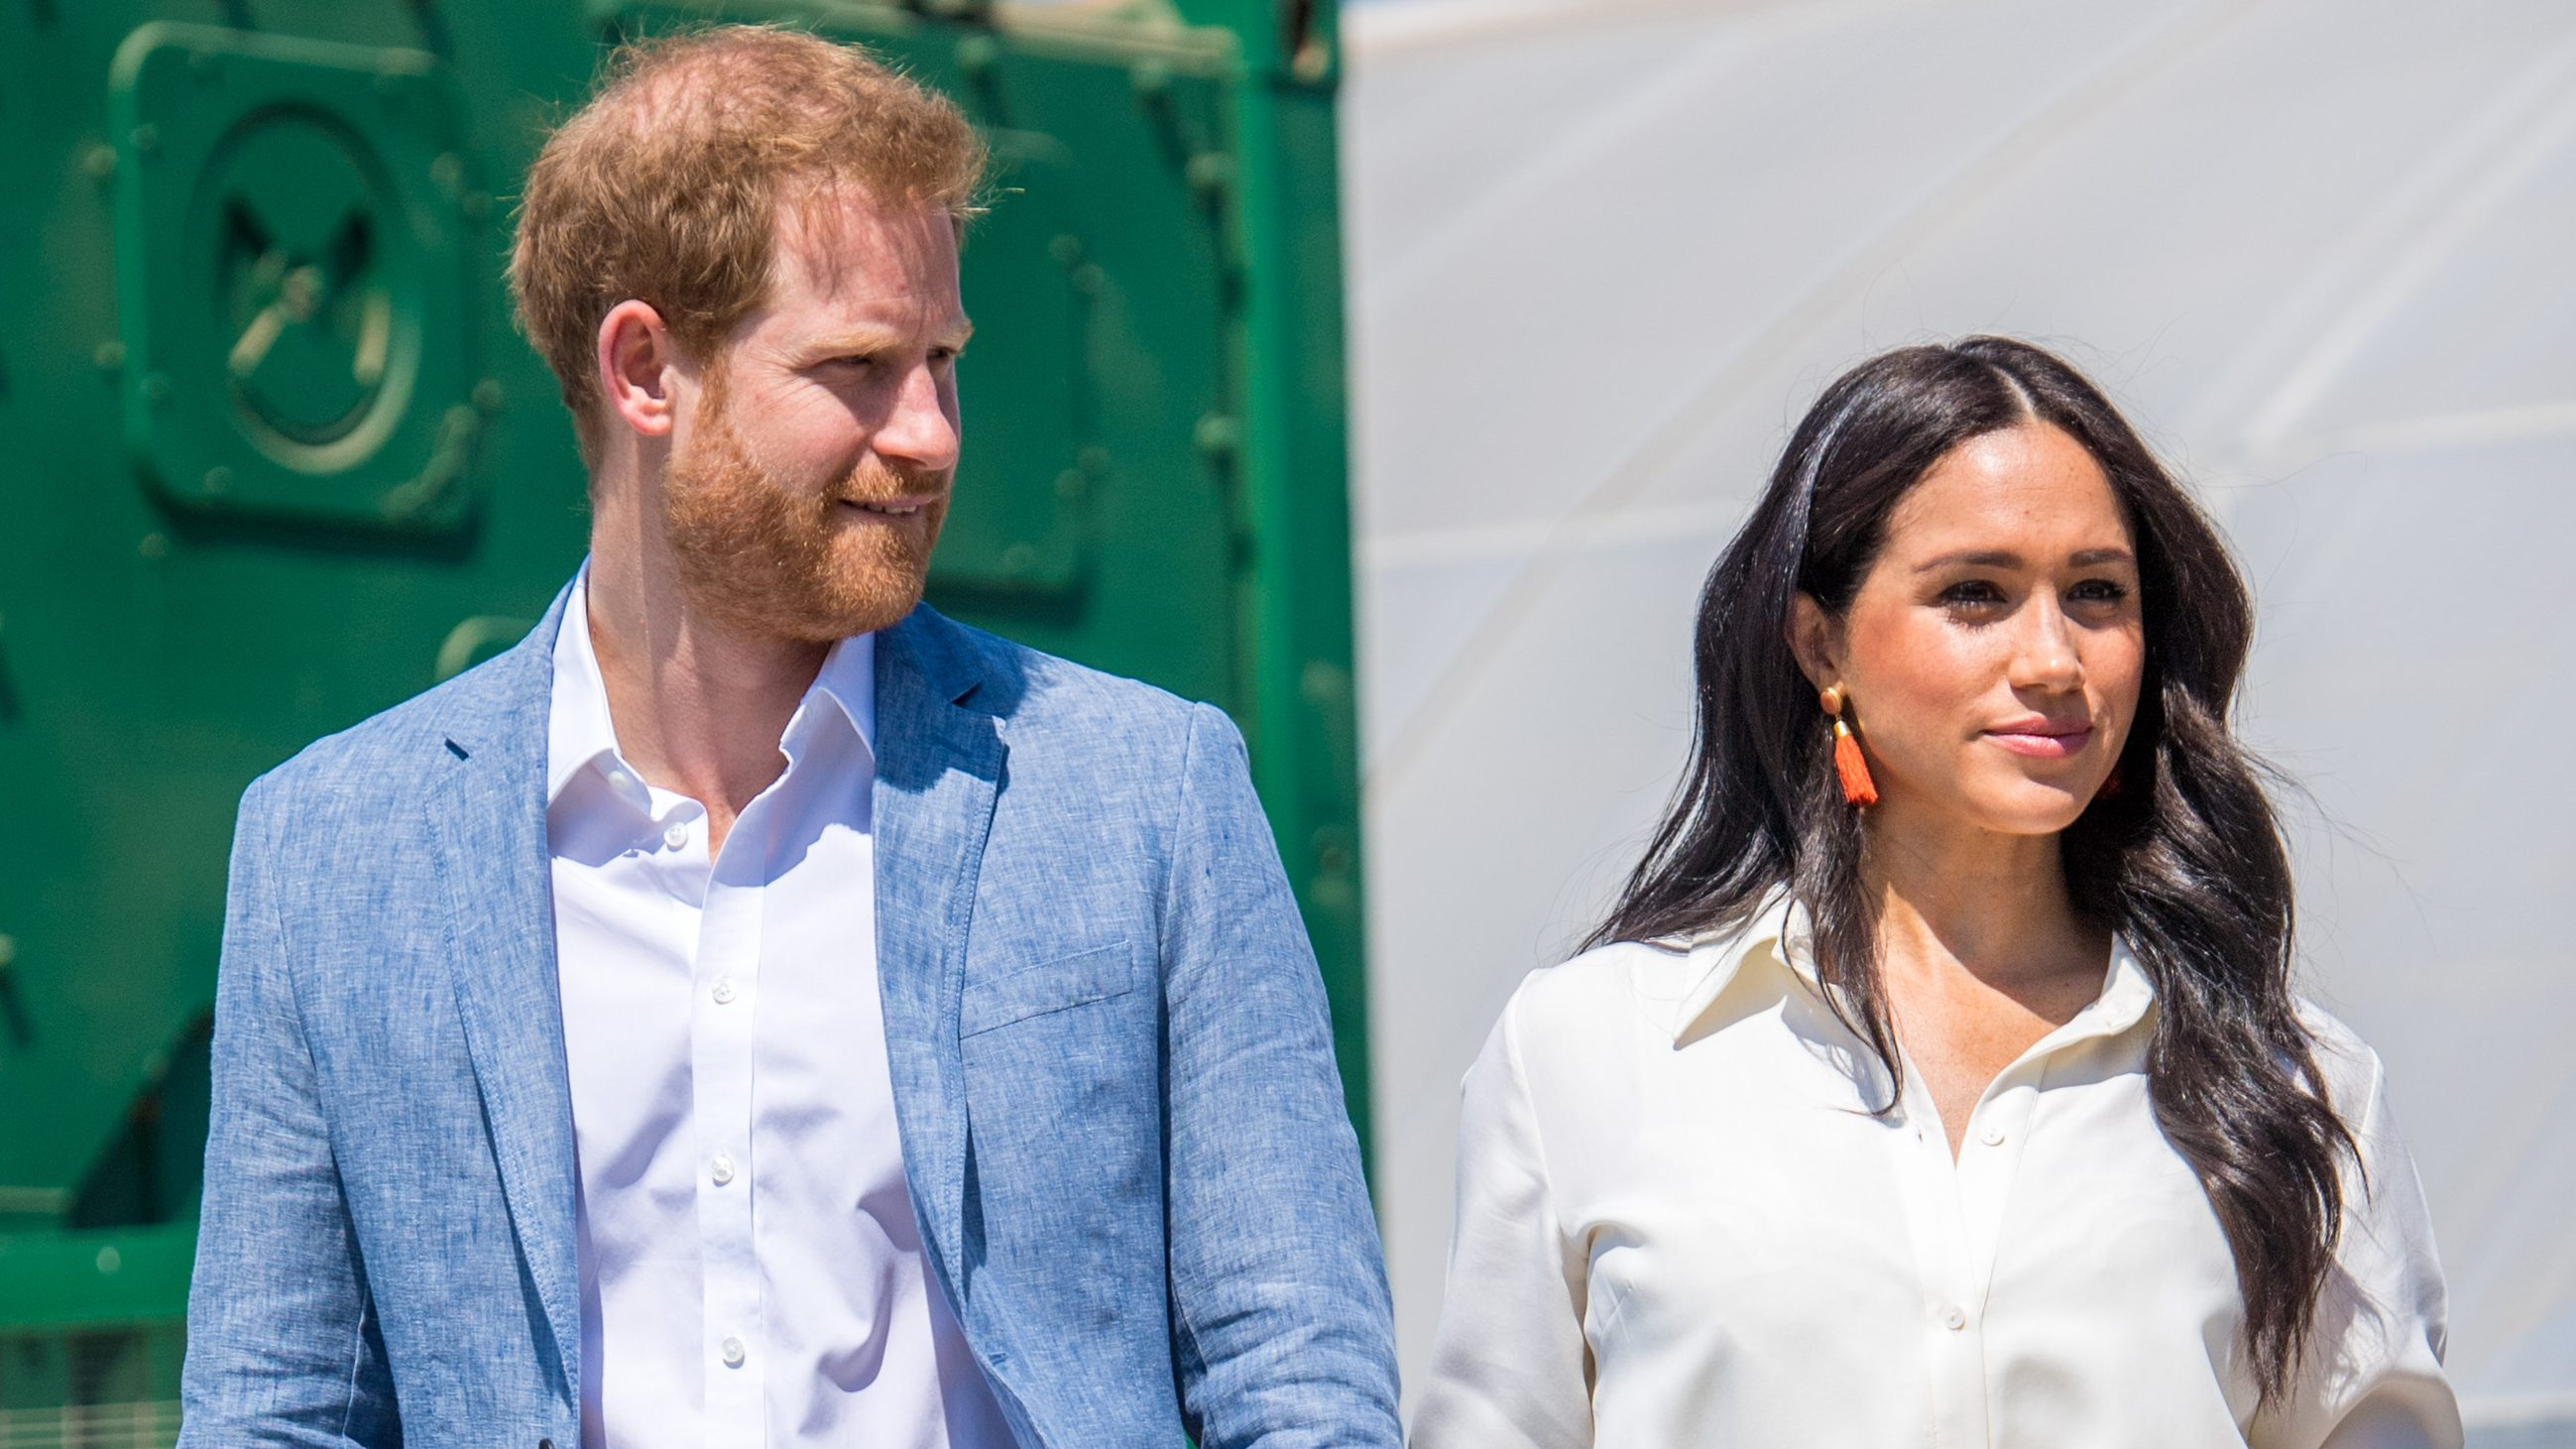 Prince Harry and Meghan Markle 'could become two of the highest paid celebrities'